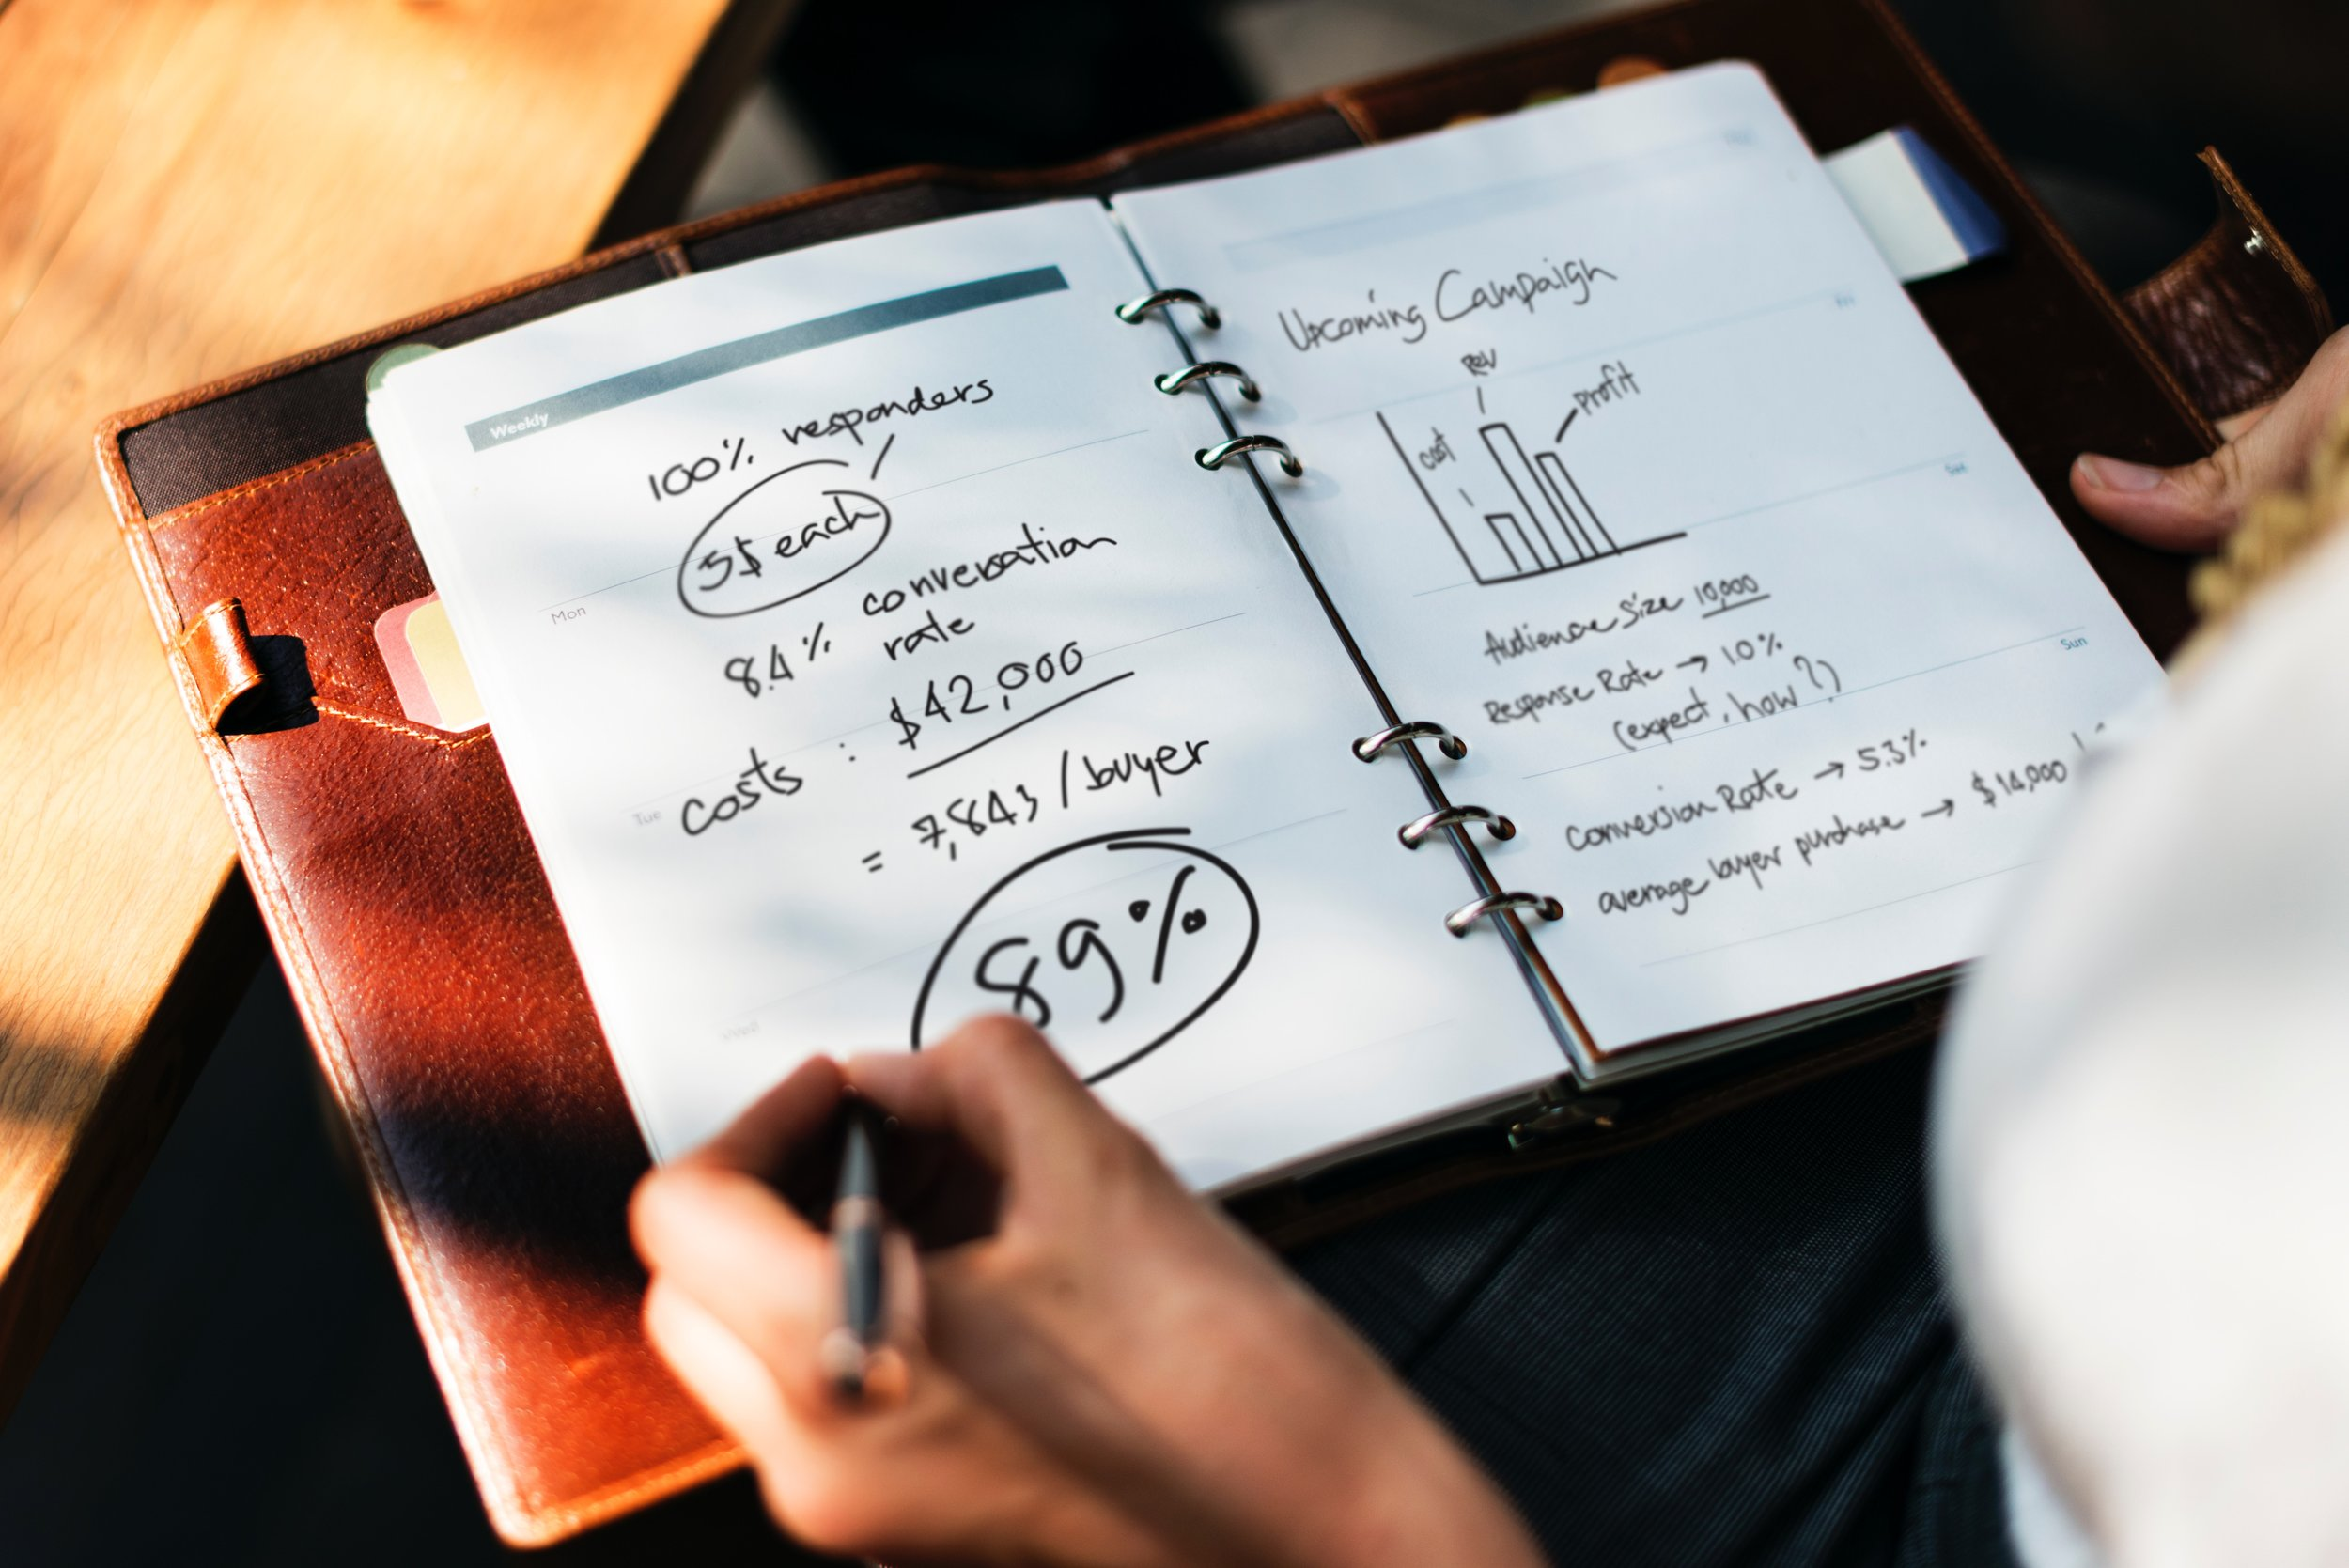 How to start a fashion business in 2019   fashion designing business plan   how to start a clothing line from scratch